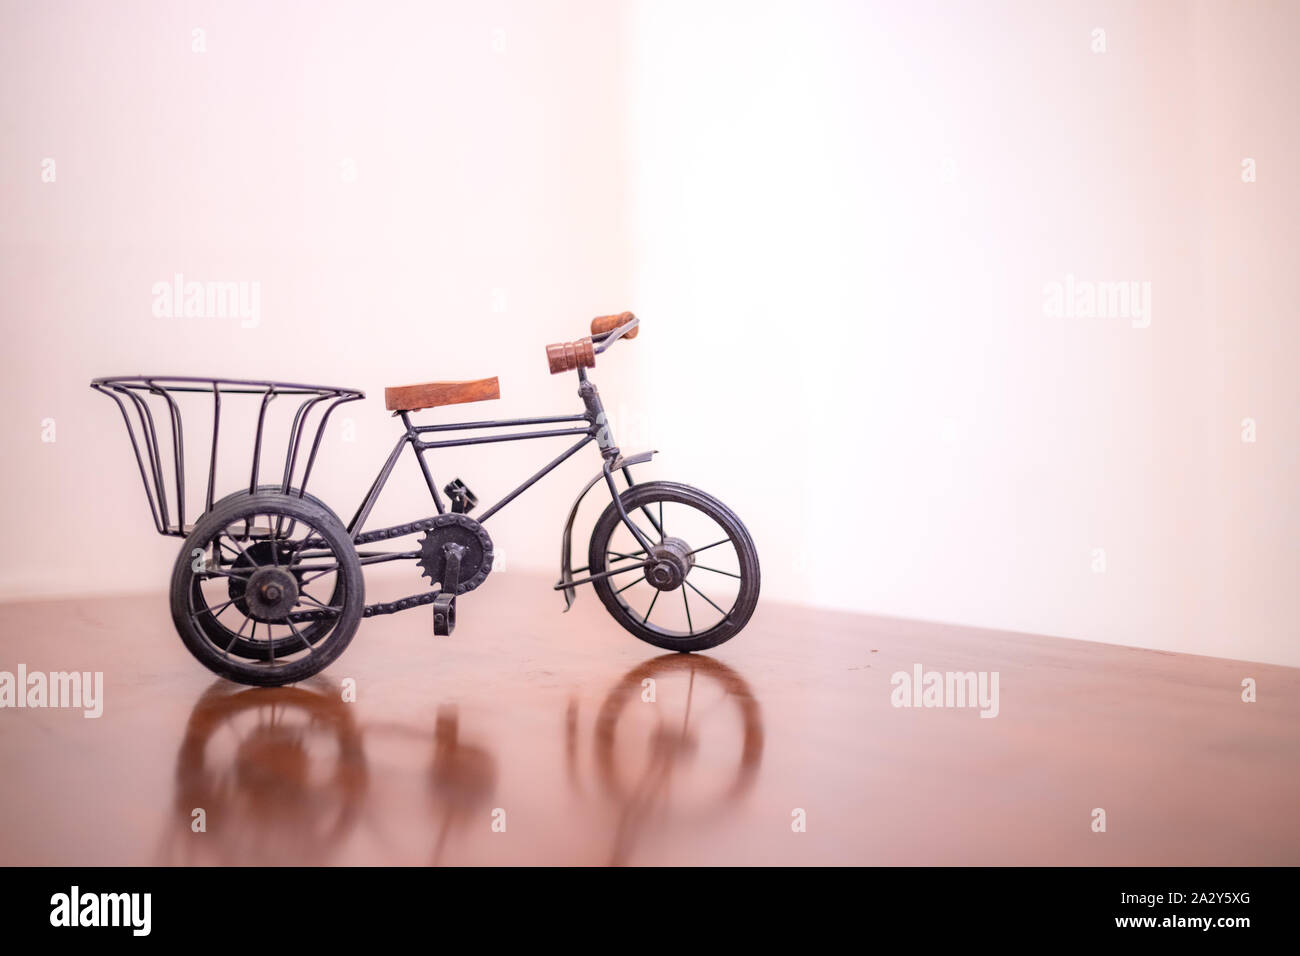 Toy bicycle or Indian style rickshaw isolated on a pink background Stock Photo